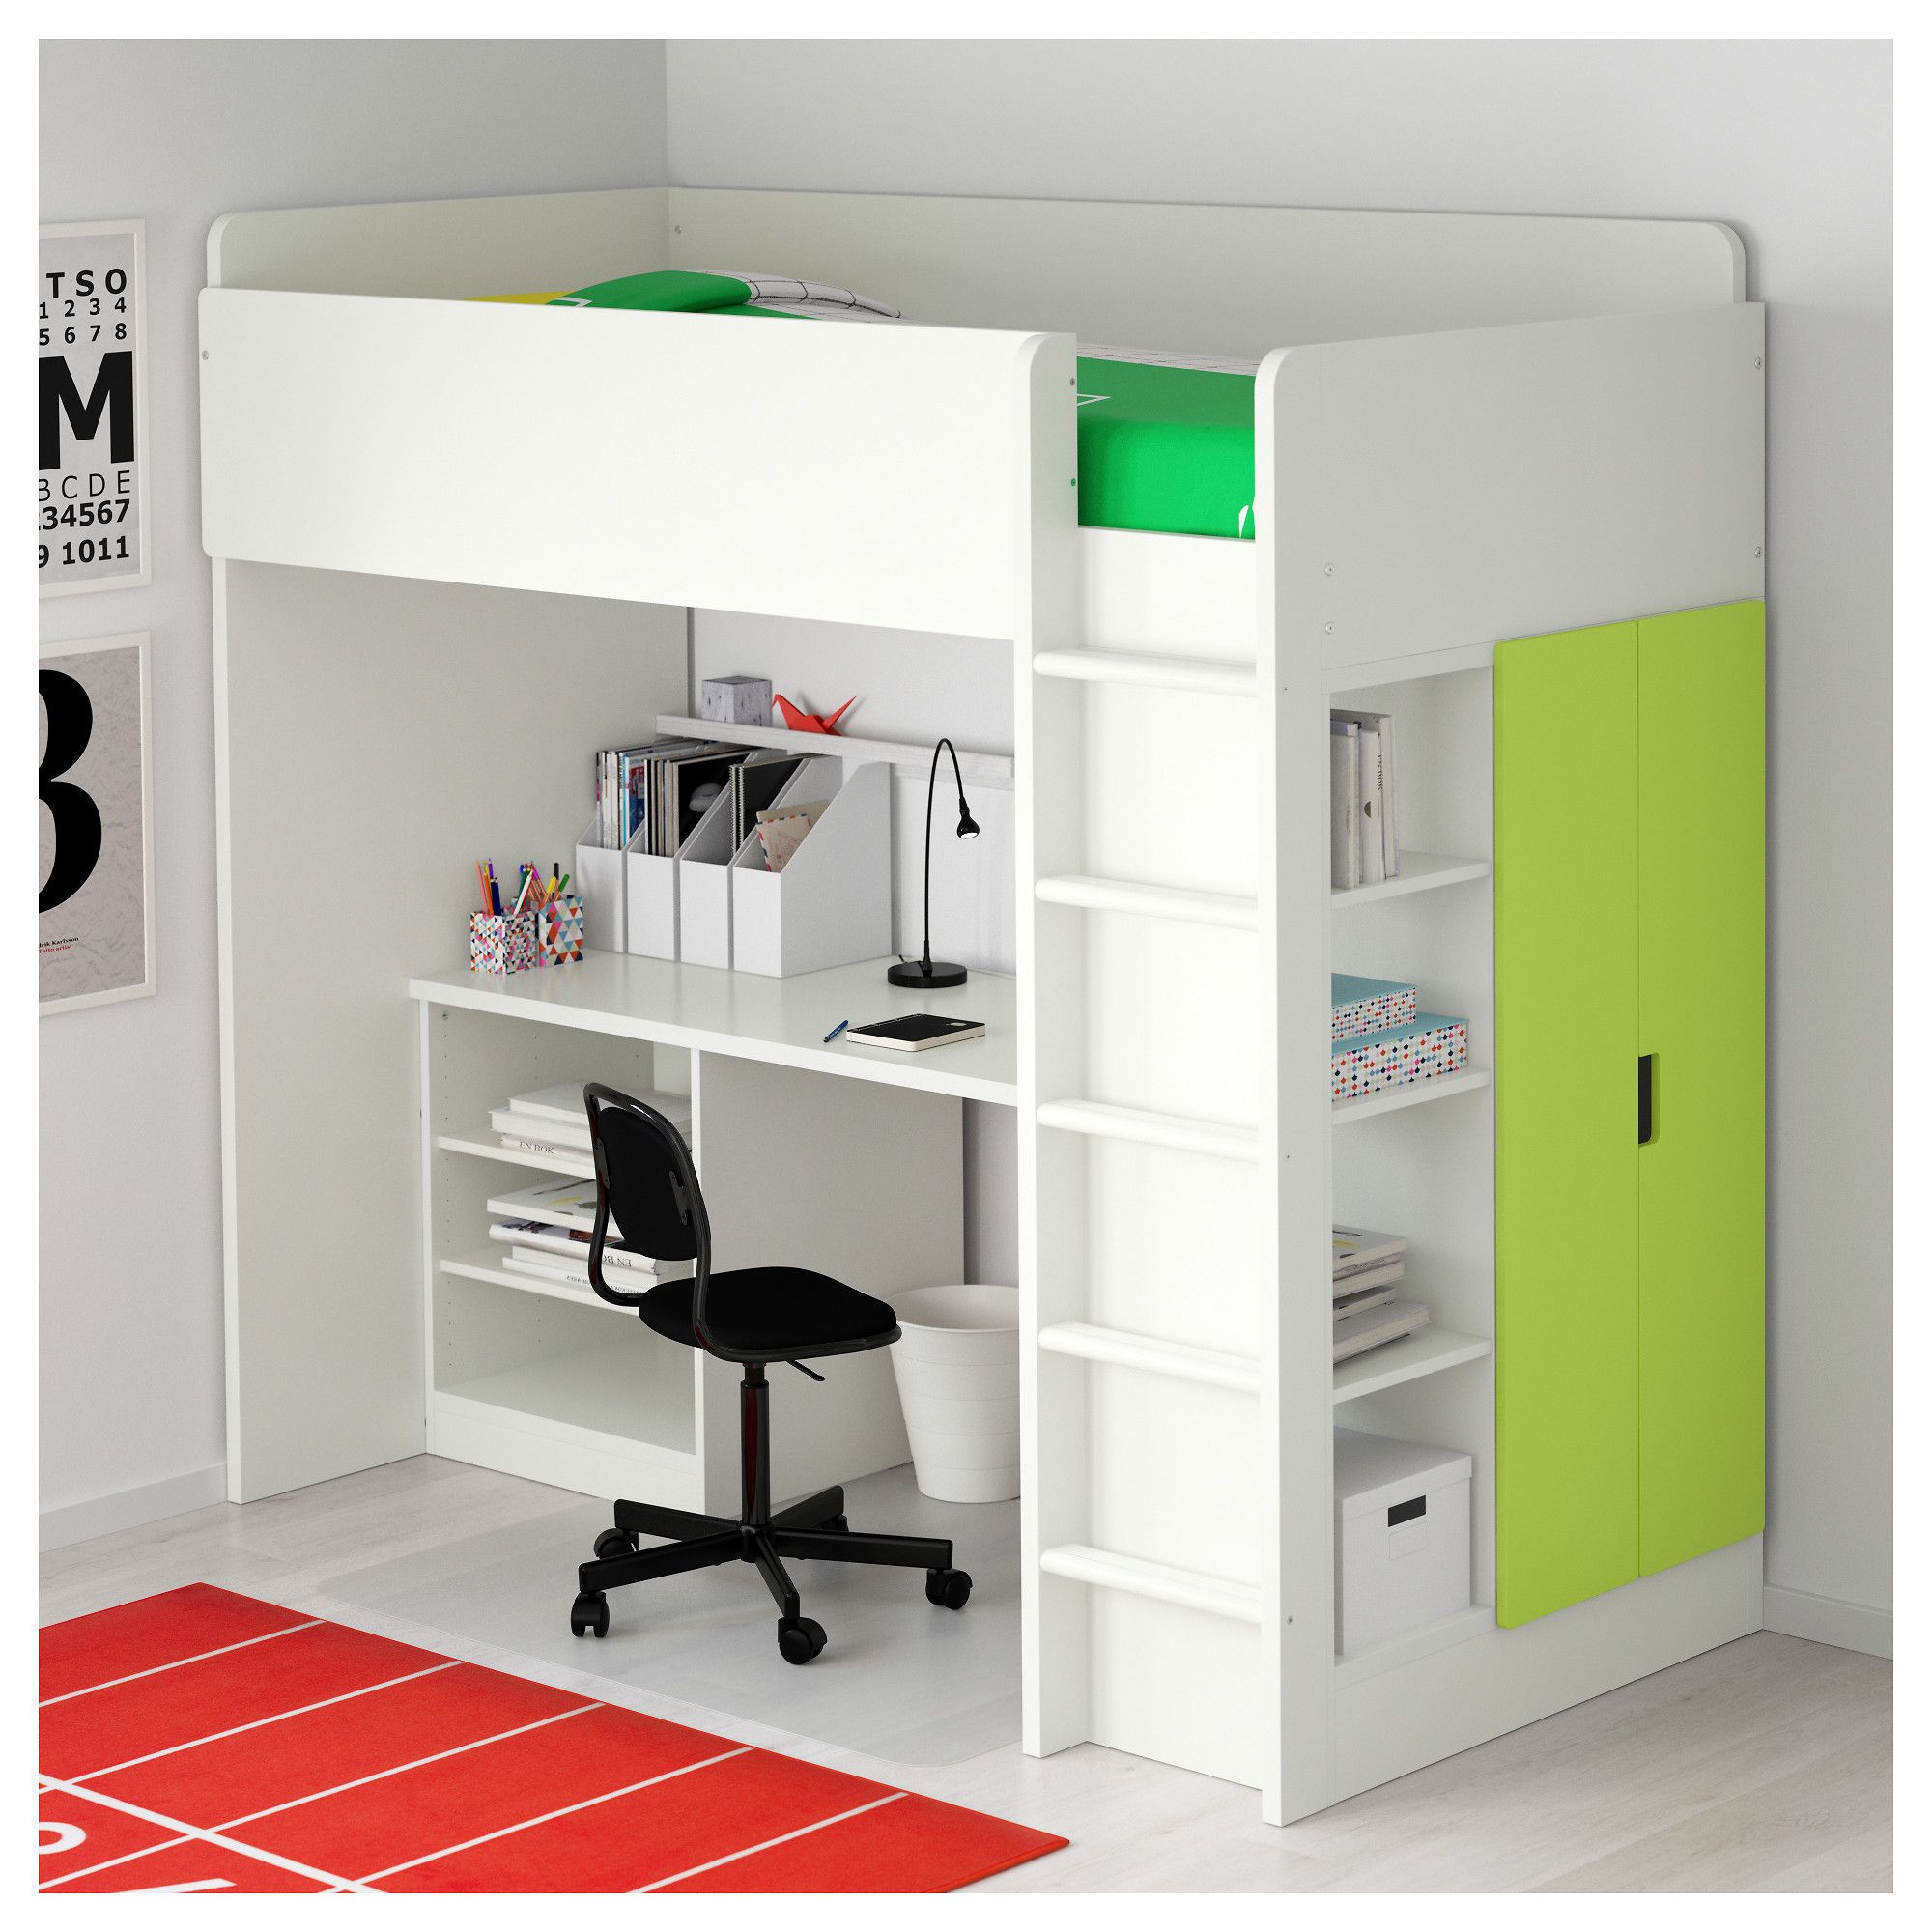 Children's loft bed ideas  IKEA  STUVA Loft bed with  shelves doors white green  Products